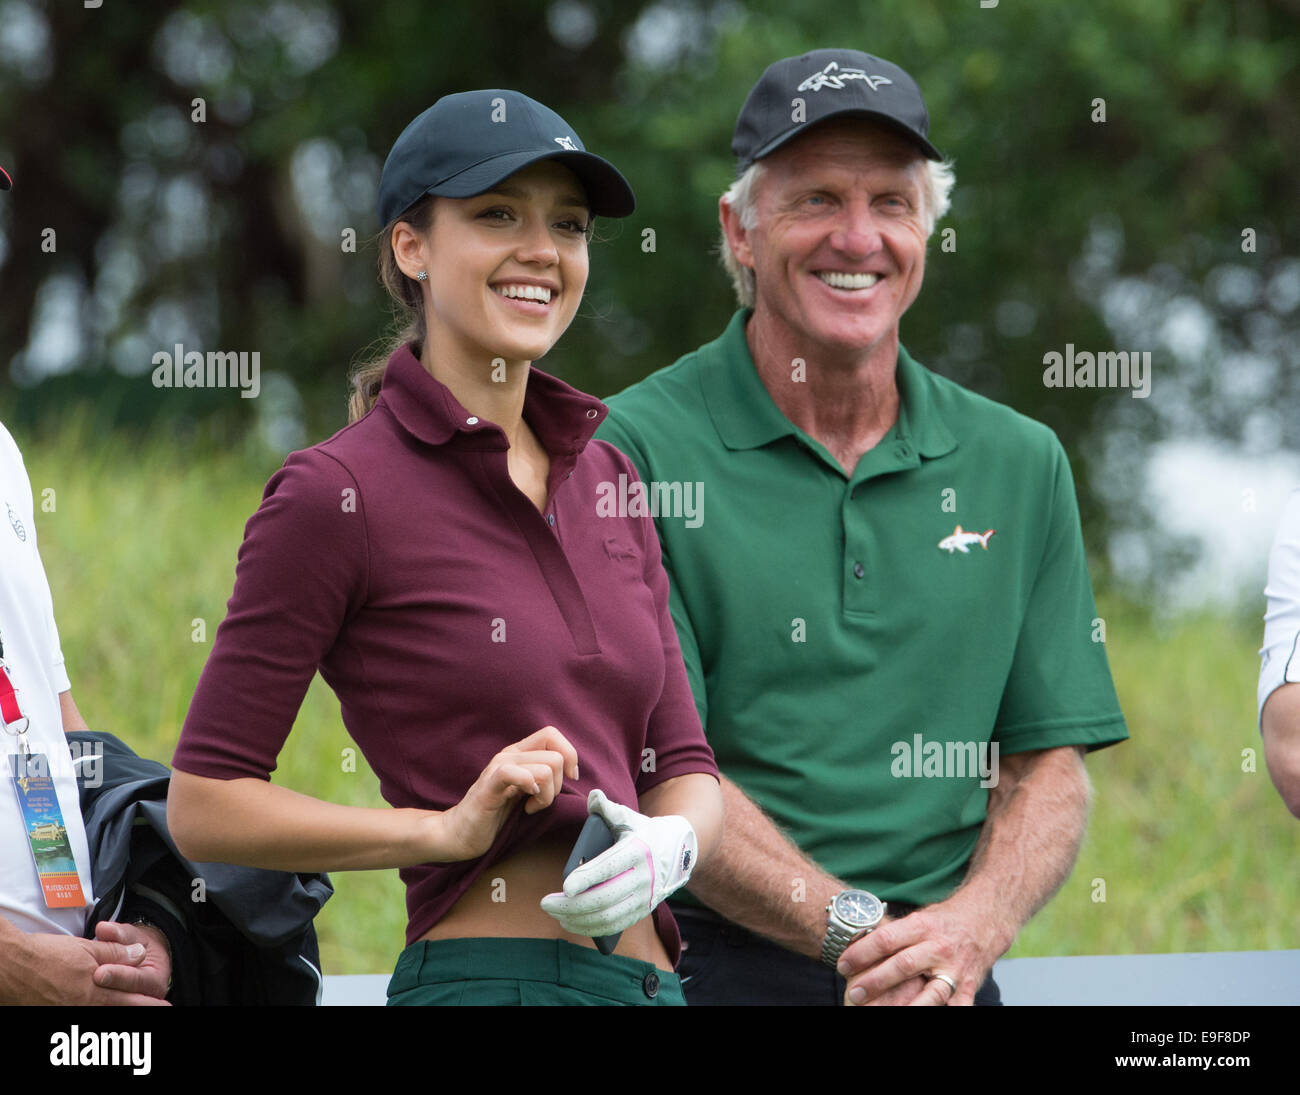 Haikou, China. 26th Oct, 2014. Hollywood star Jessica Alba puts on a good round of golf with her coach Greg Norman - Stock Image